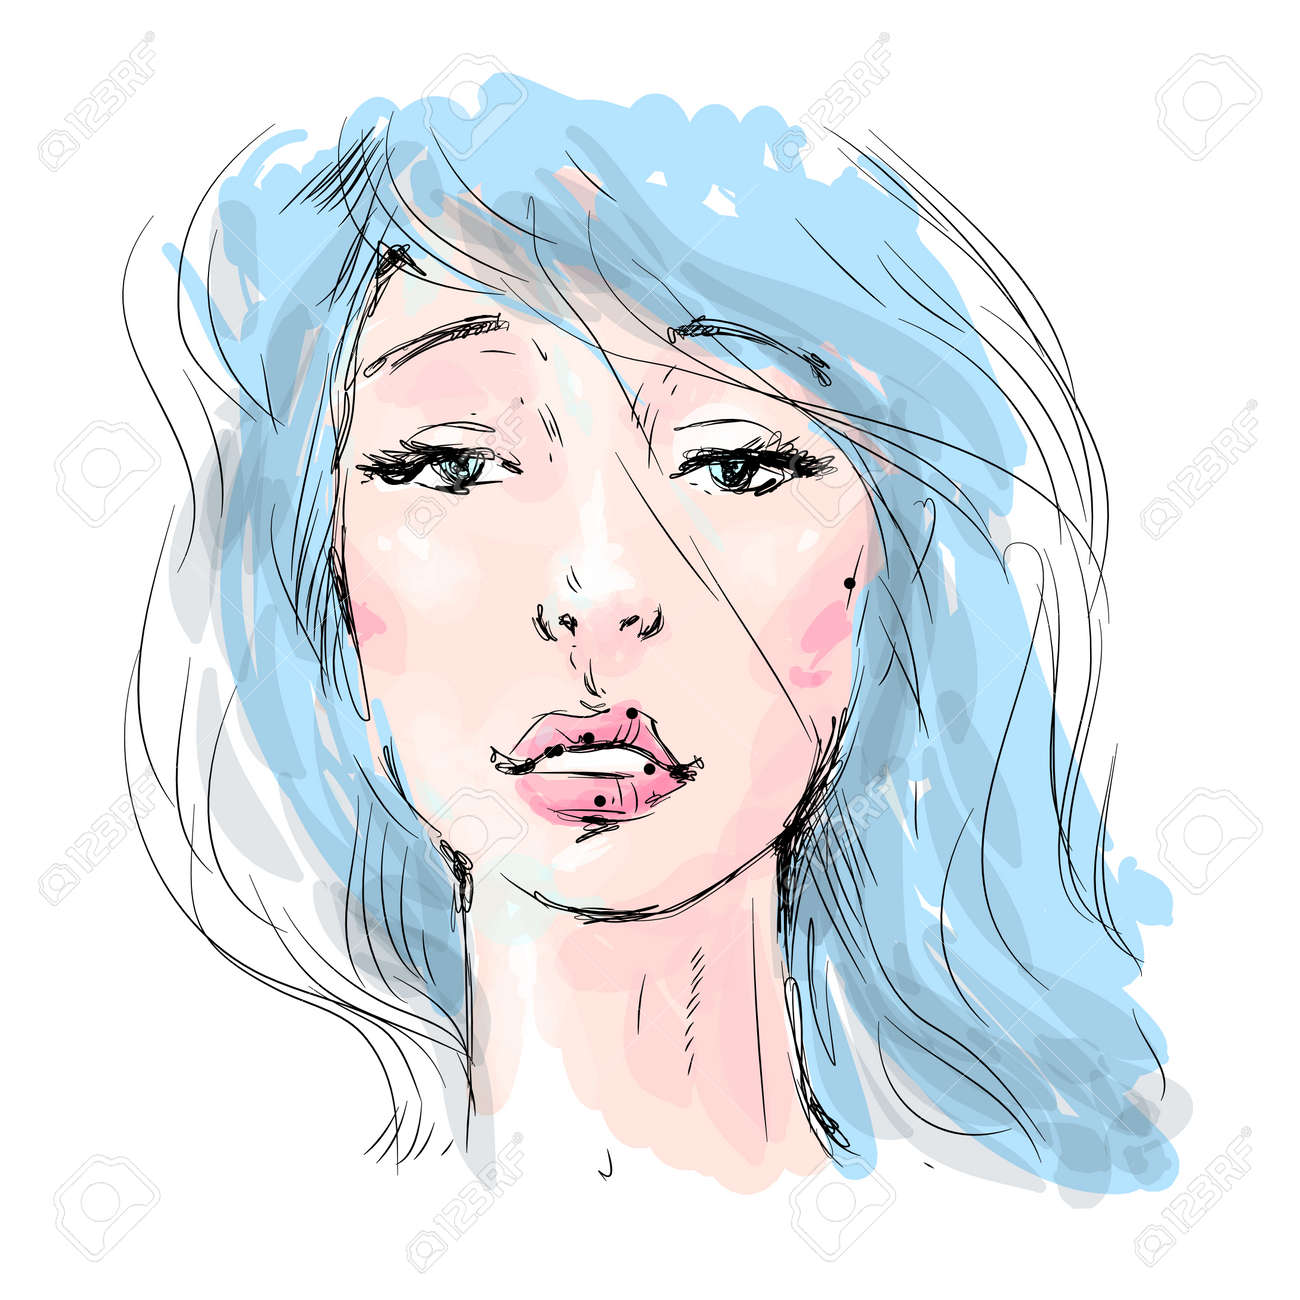 Beautiful girl face with long blue hair. Watercolor illustration in vector.Design for invitation, wedding, birthday and greeting cards, salons, beauty and fashion industry. - 162823026